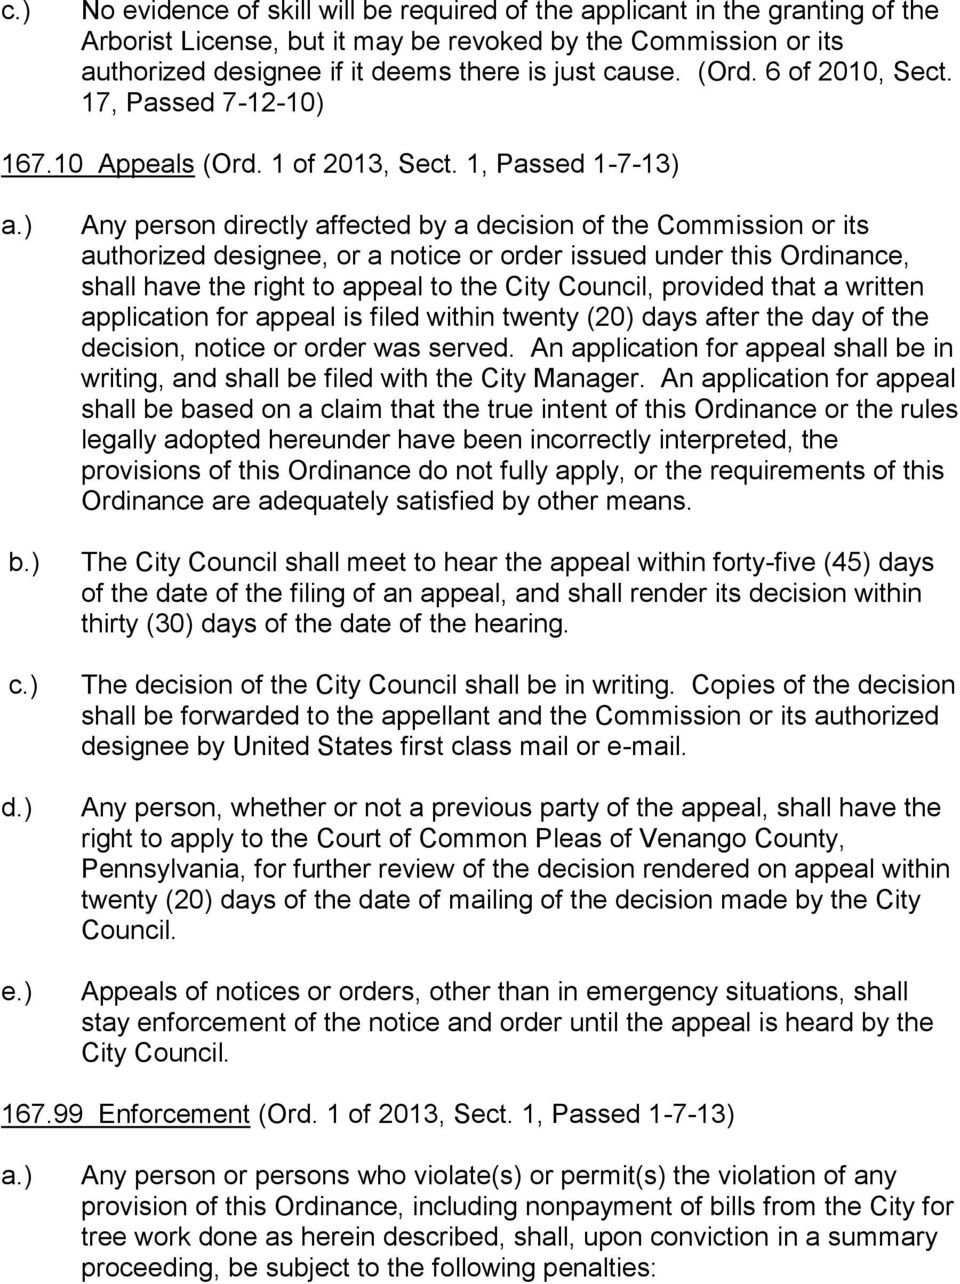 1, Passed 1-7-13) Any person directly affected by a decision of the Commission or its authorized designee, or a notice or order issued under this Ordinance, shall have the right to appeal to the City